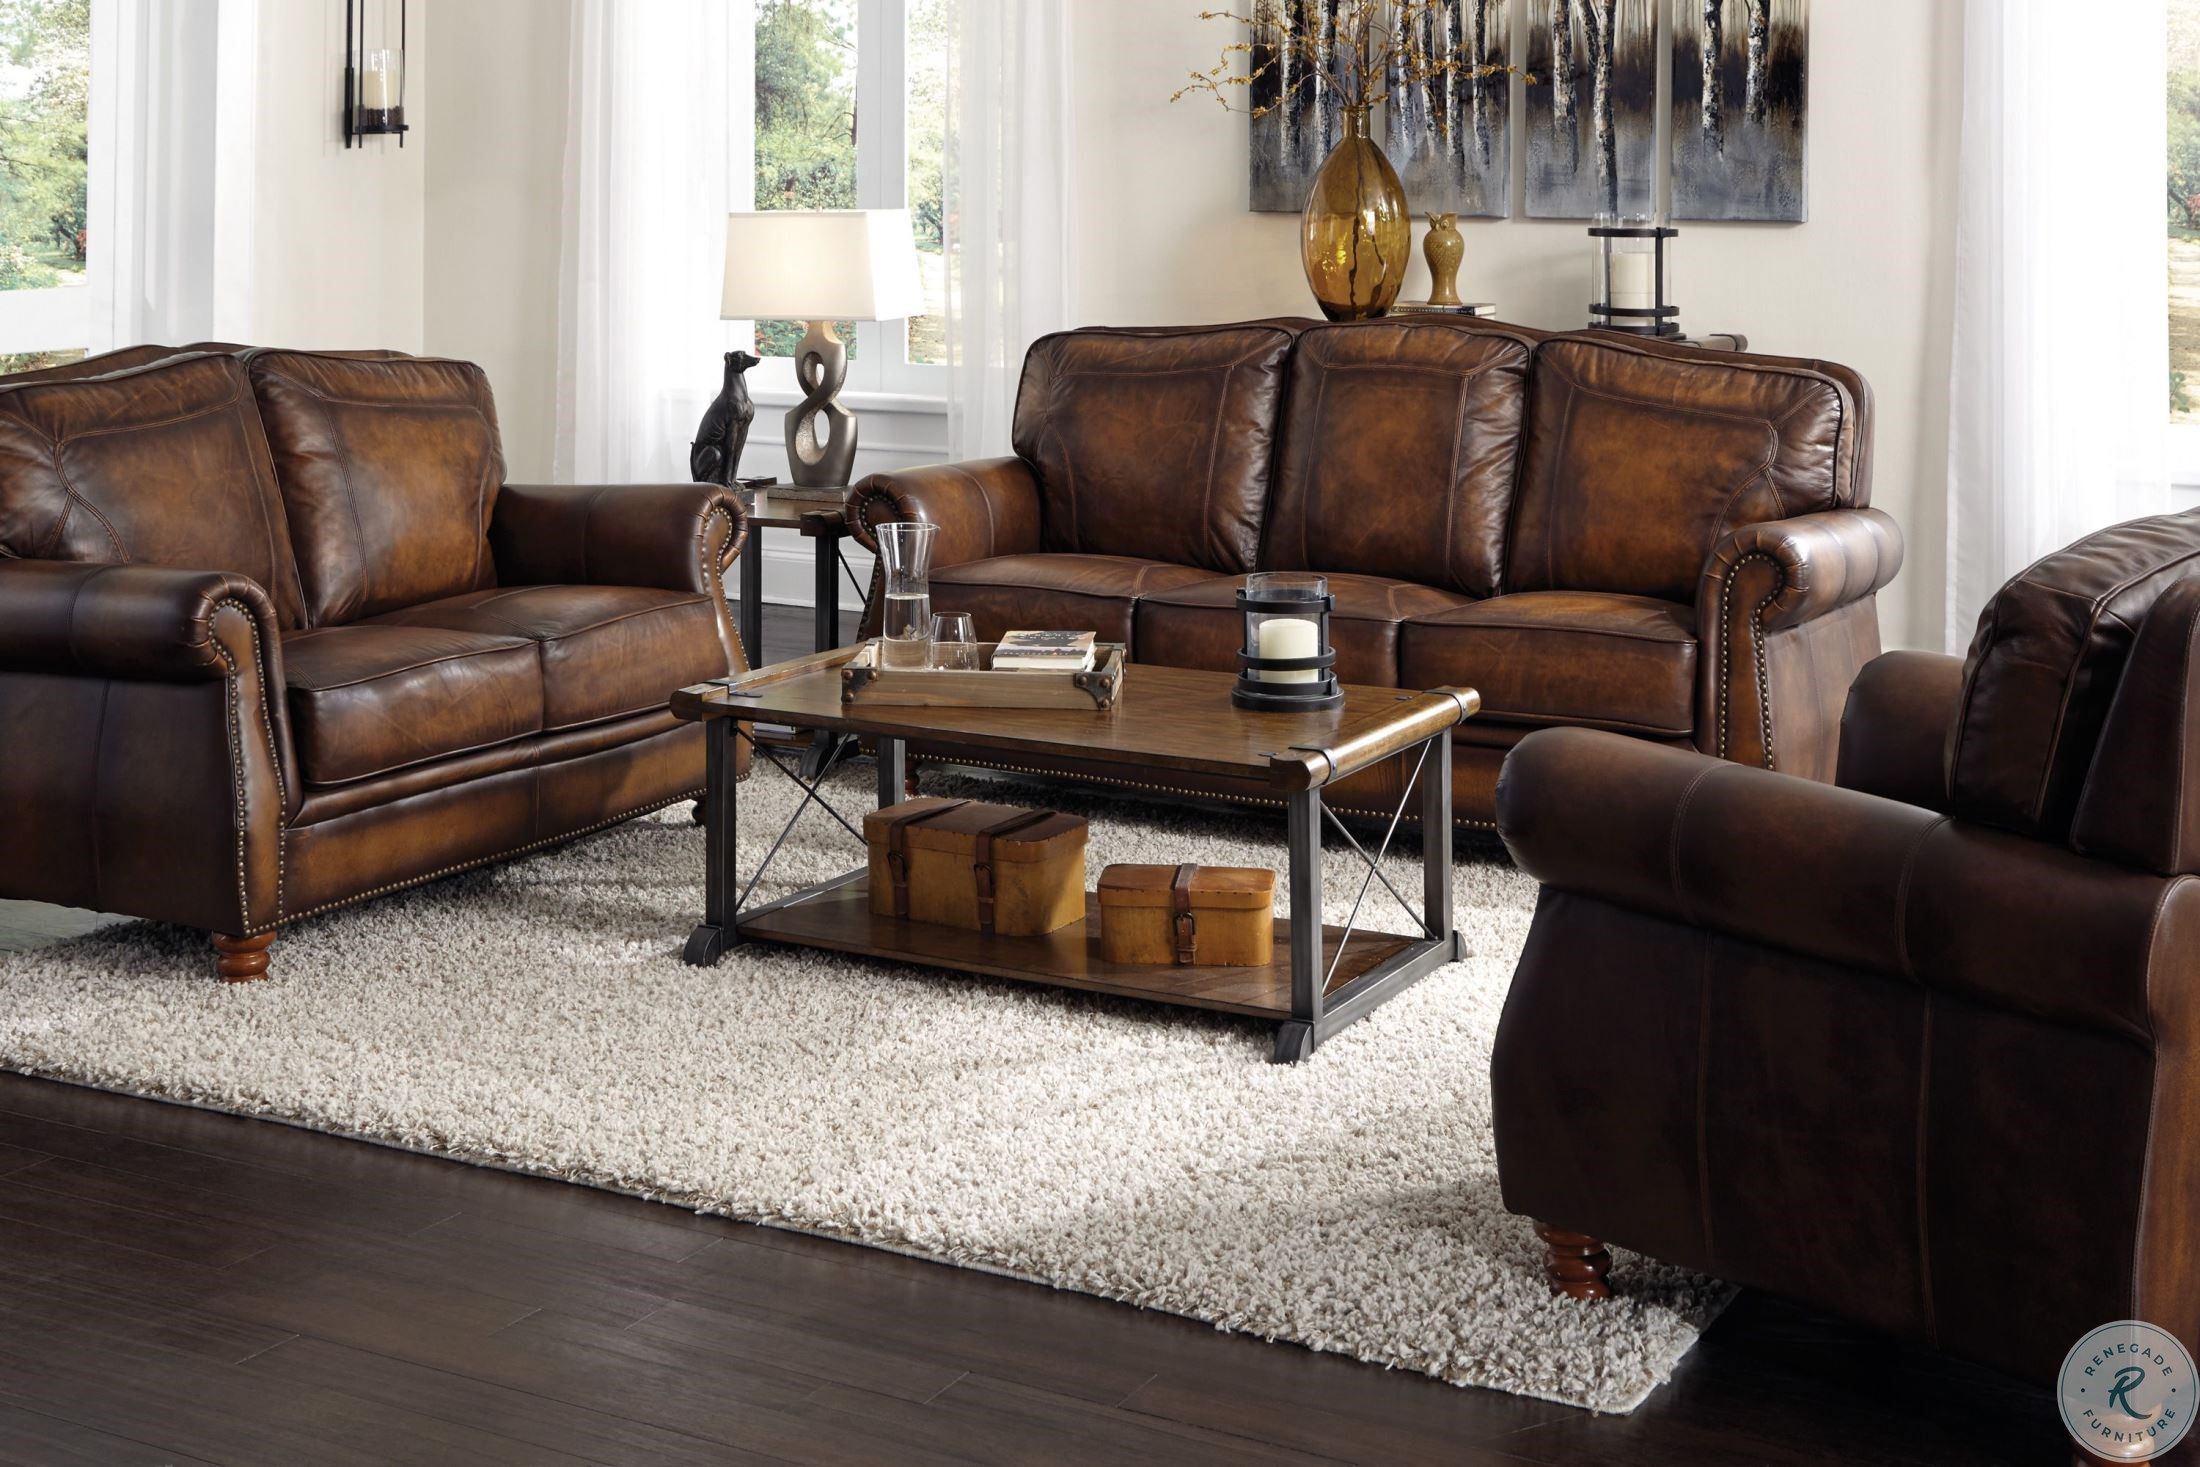 Montbrook Hand Rubbed Brown Leather Living Room Set In 2021 Leather Sofa Living Room Leather Couch Living Room Decor Leather Living Room Set